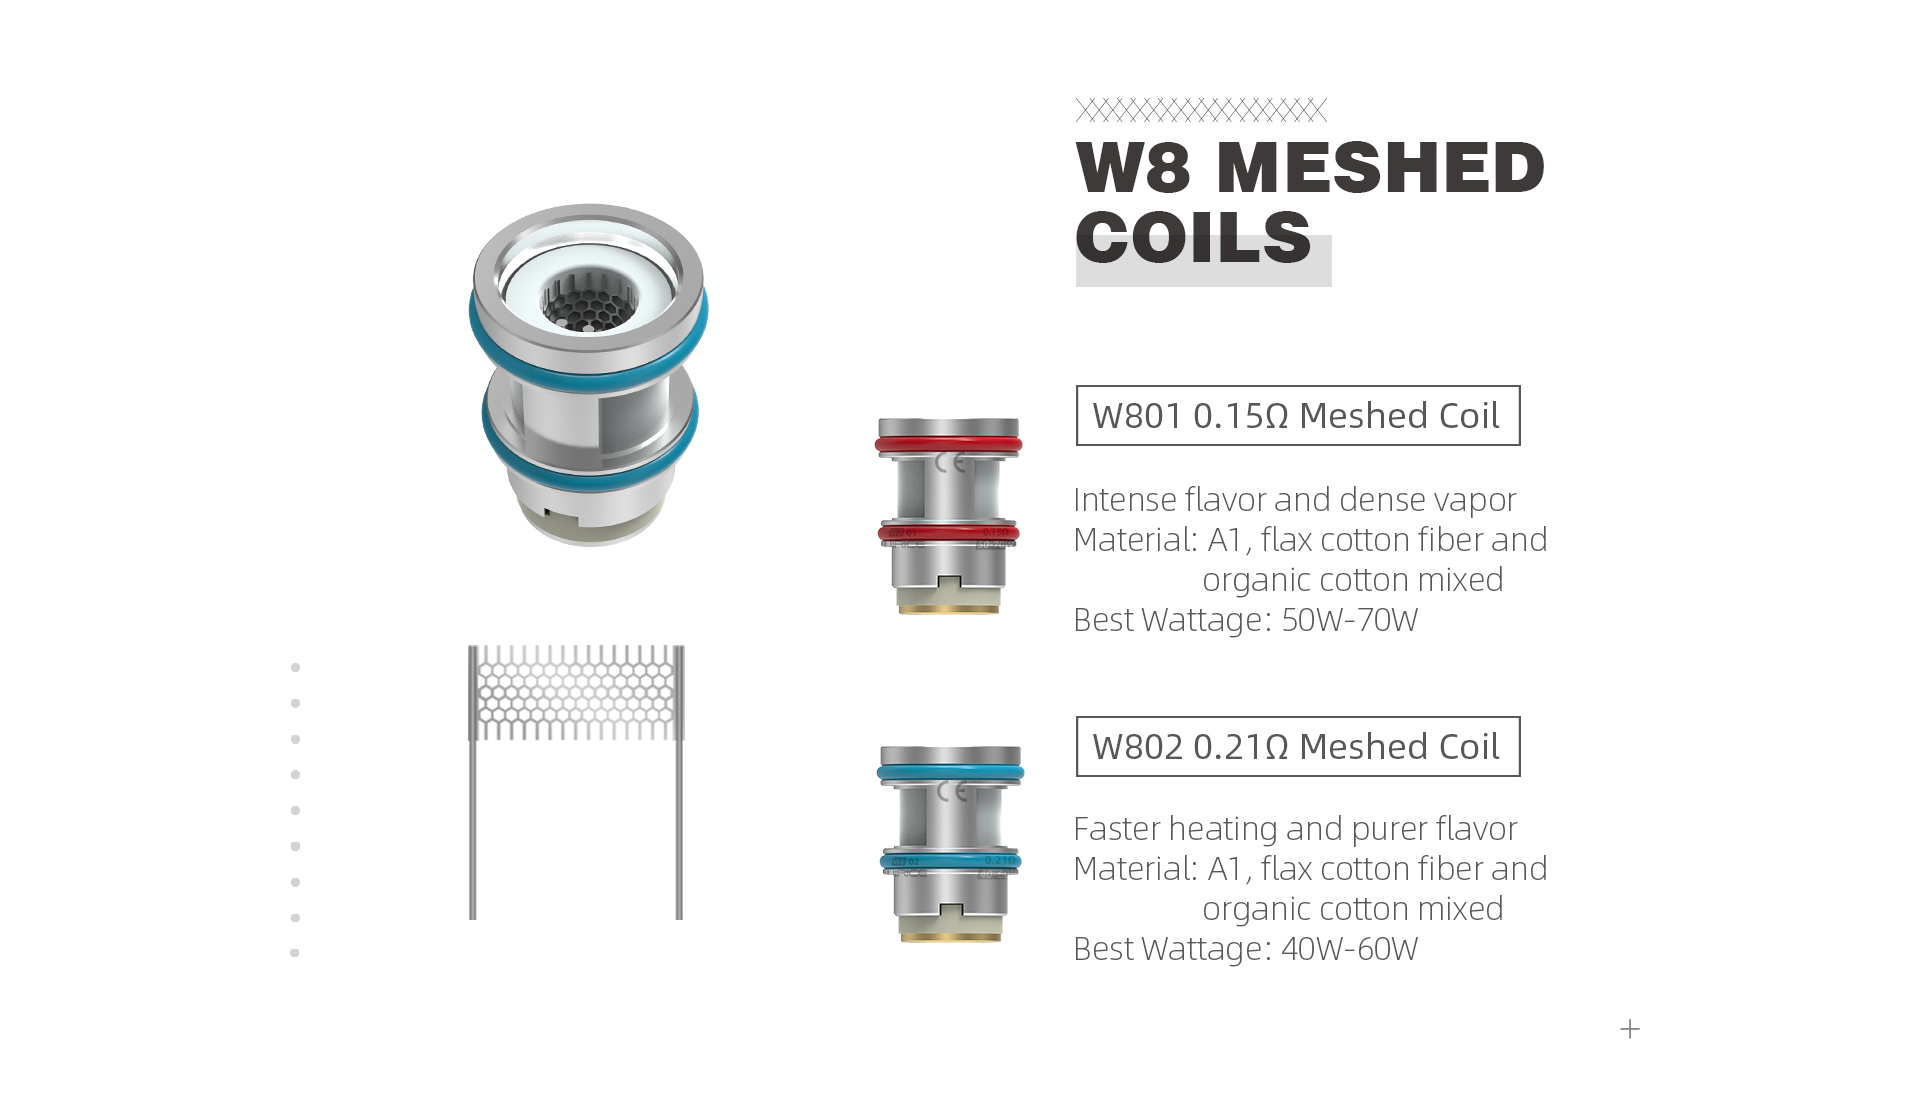 wirice launcher tank - w8 meshed coil